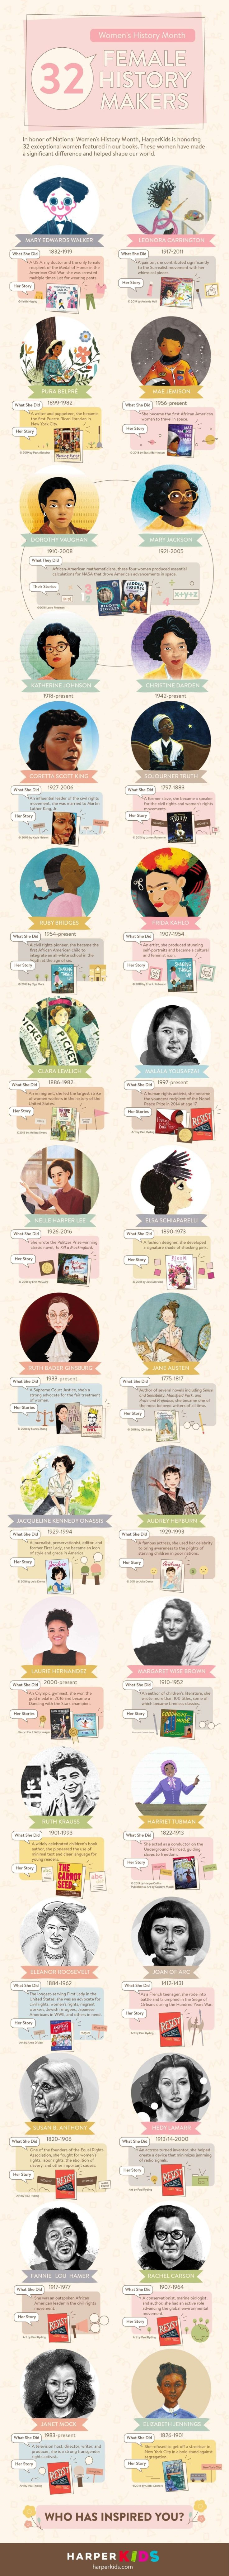 Exceptional women featured in books - full infographic